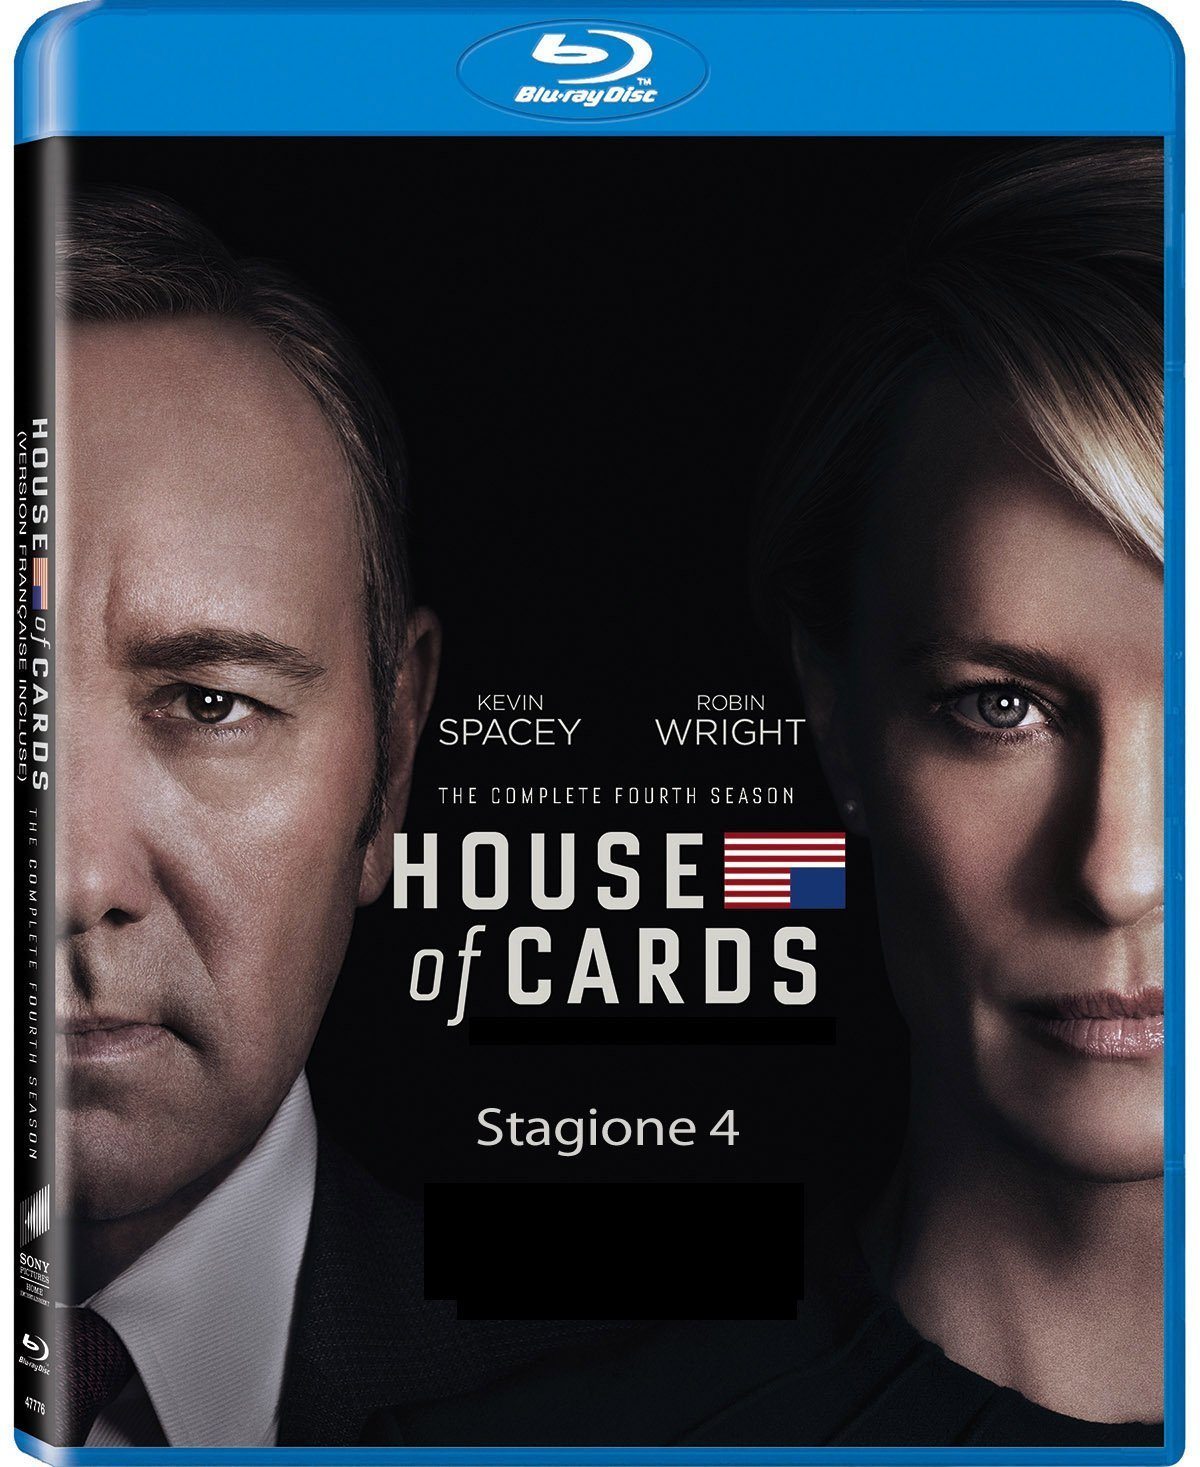 COF.HOUSE OF CARDS - STAGIONE 04 (4 BLU RAY)